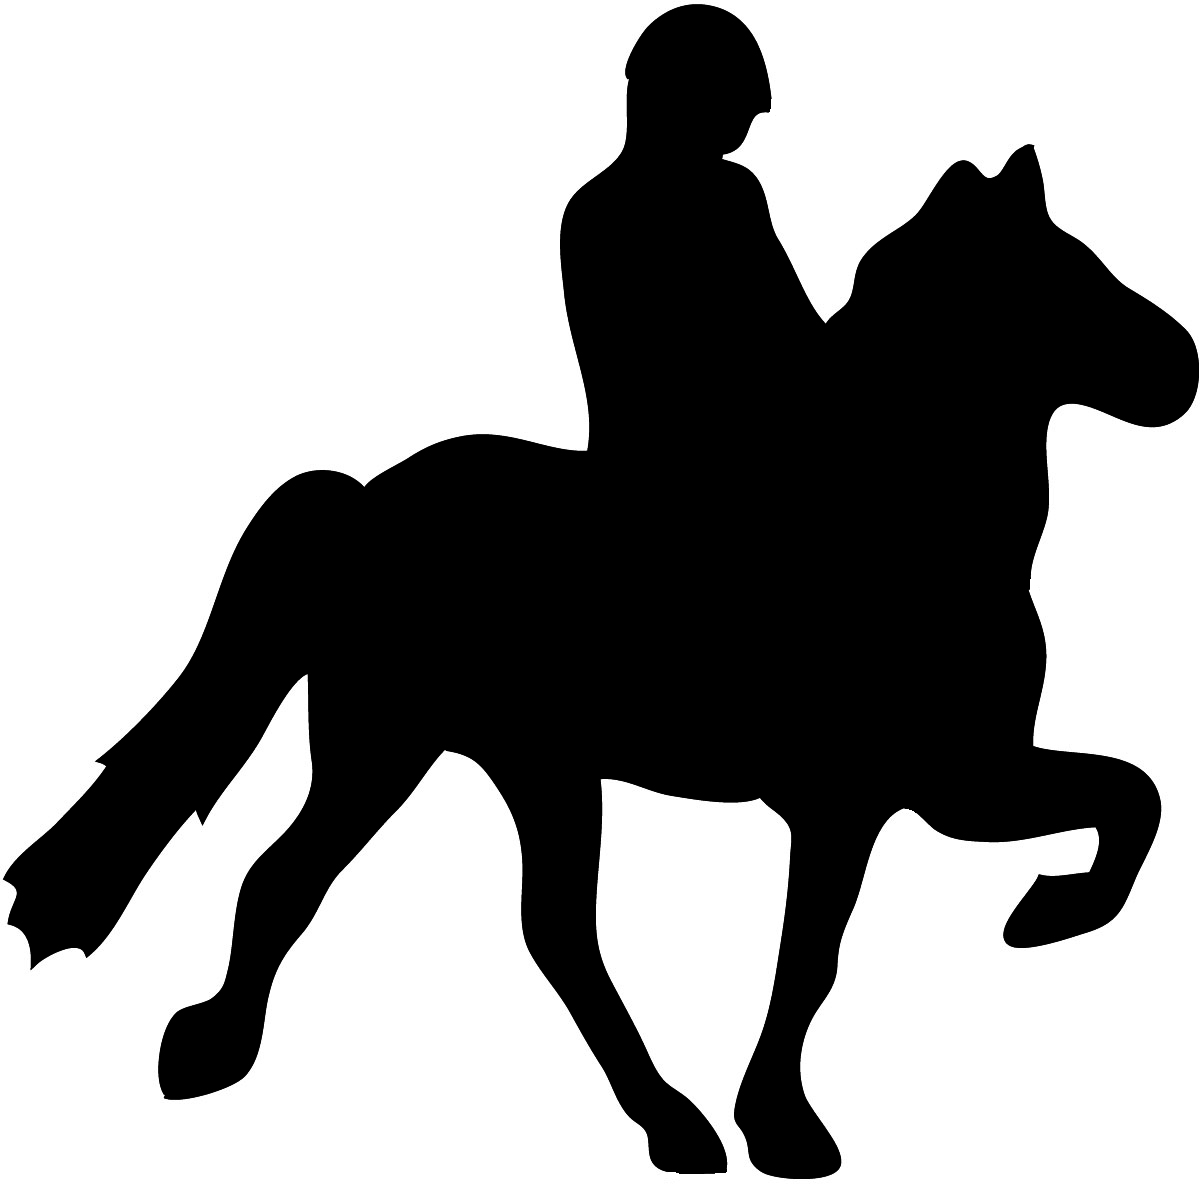 Horse silhouette with rider